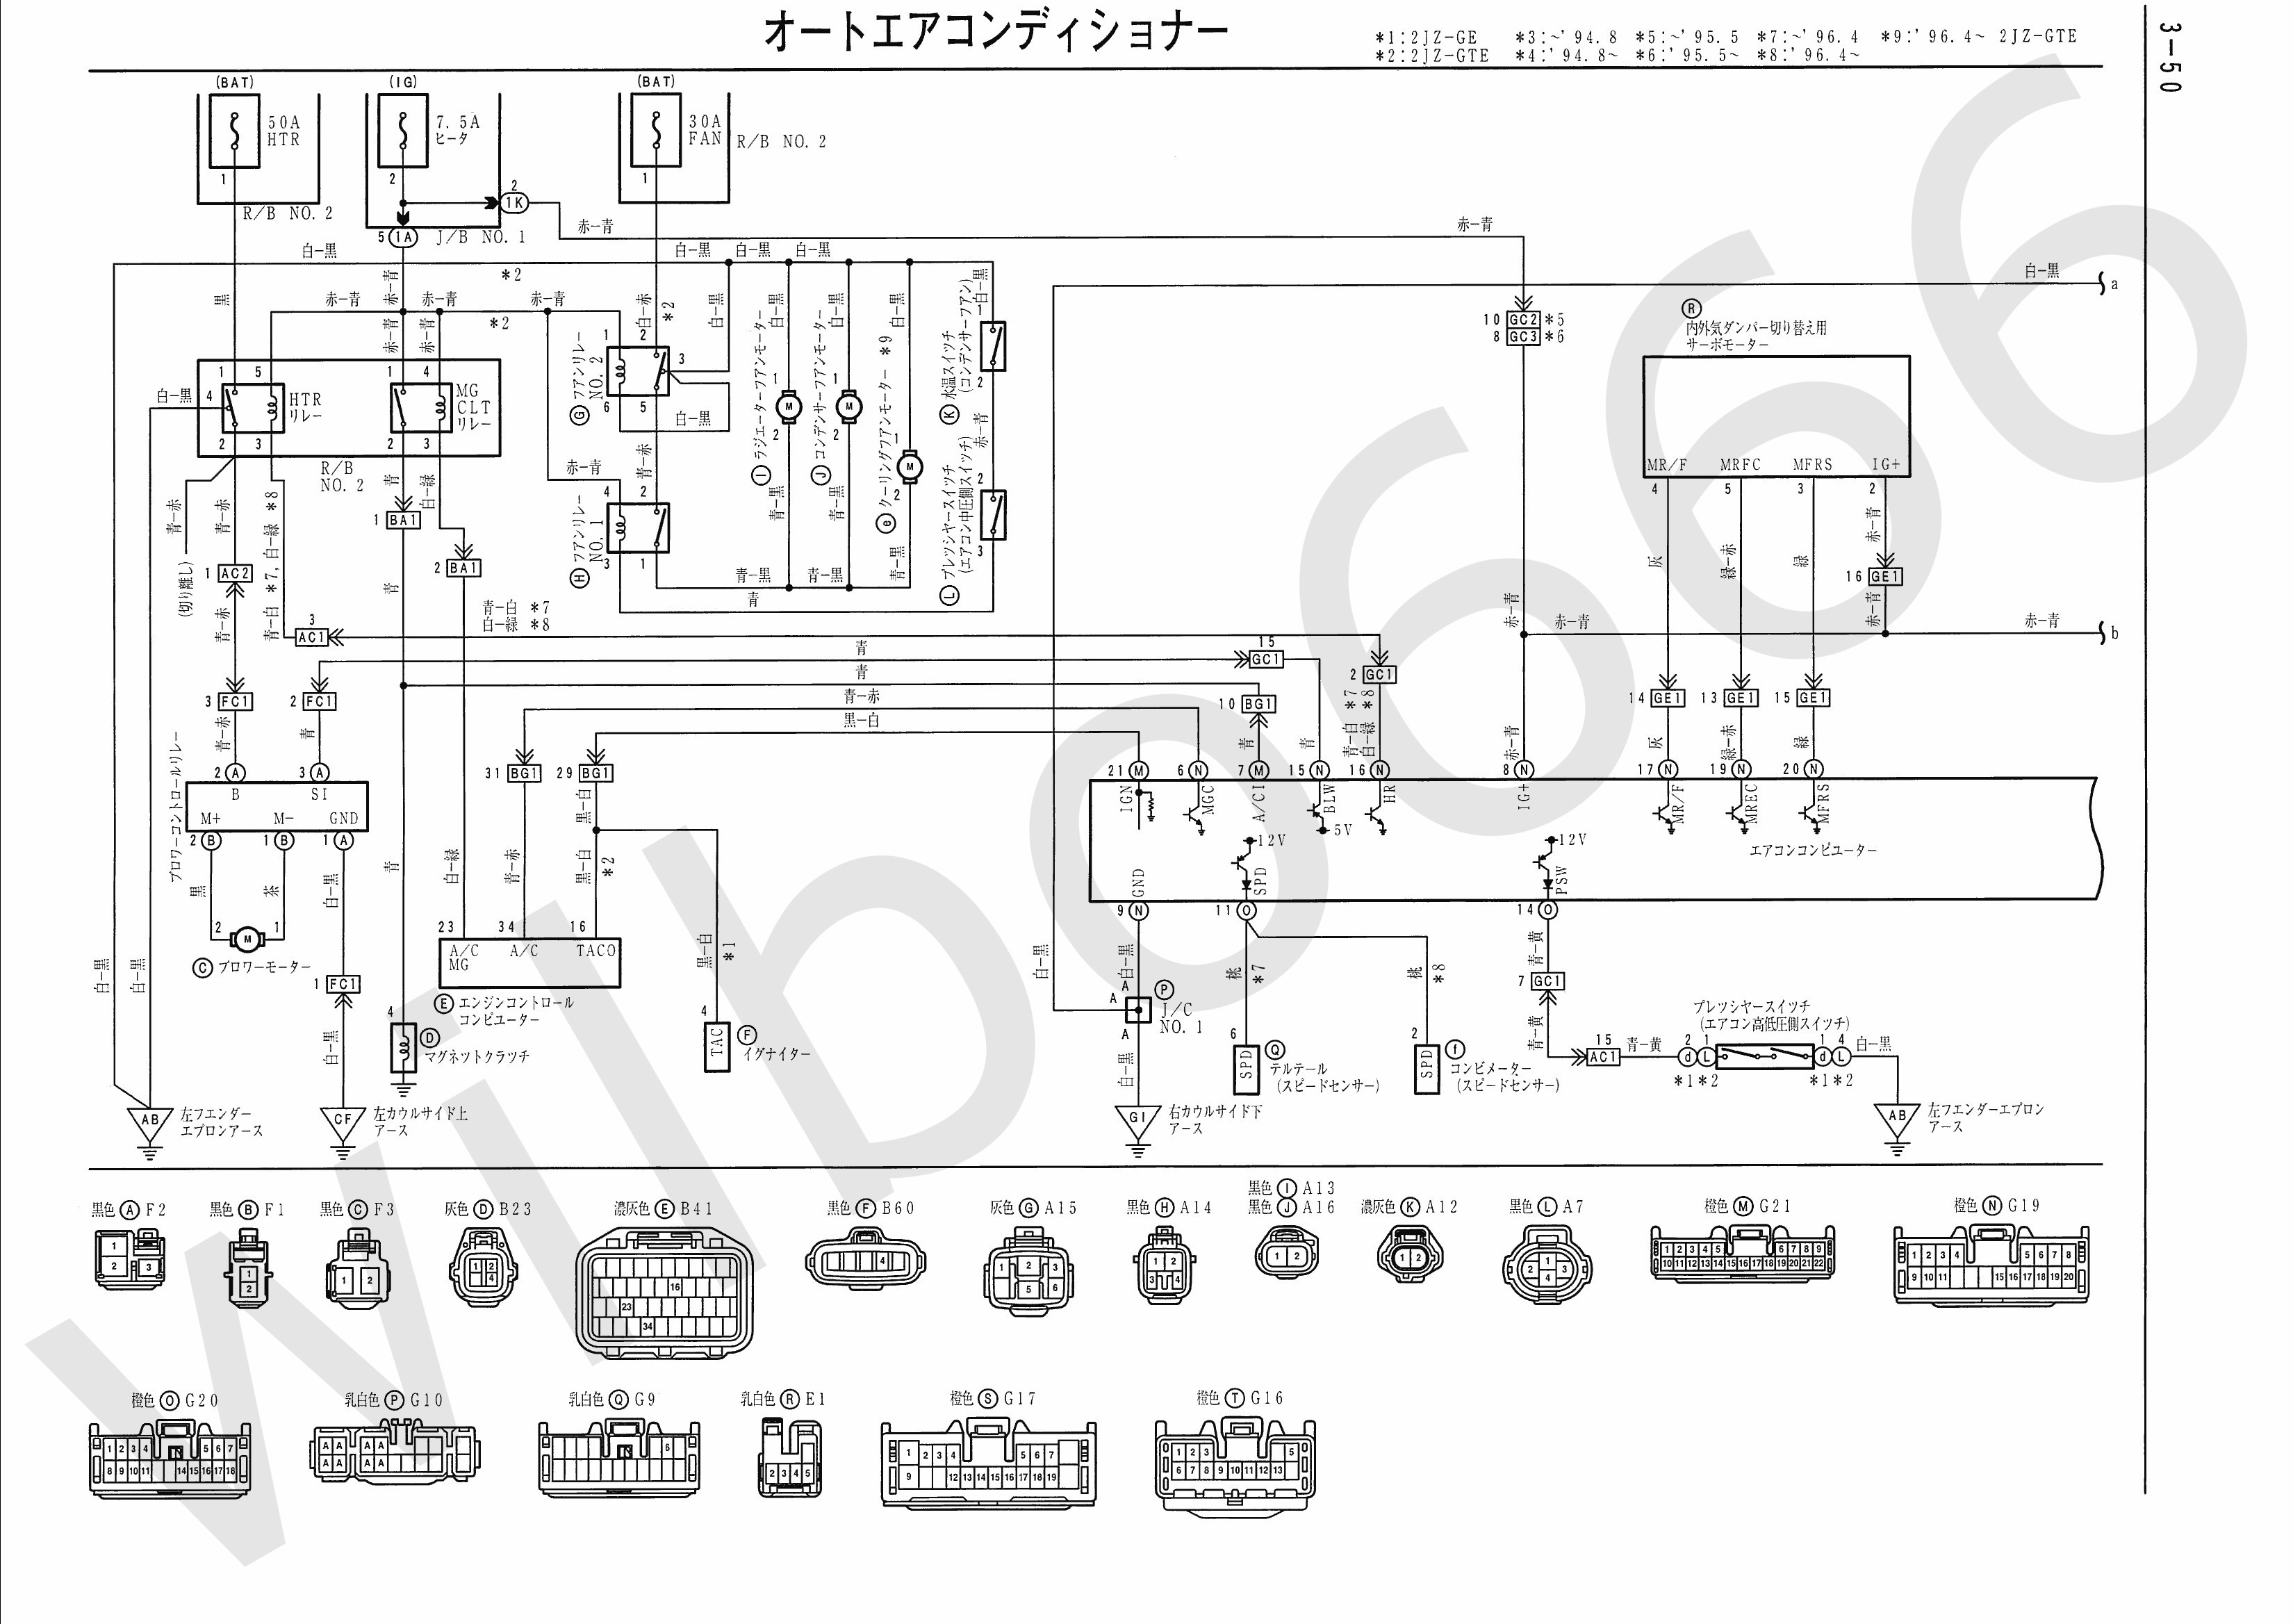 Obd1 Engine Harness Diagram Honda Obd2 Wire Harness Diagram ... on 96 gti vr6 harness, obd2 diagram chevrolet, obd2 pin diagram, obd0 b18a wire harness,